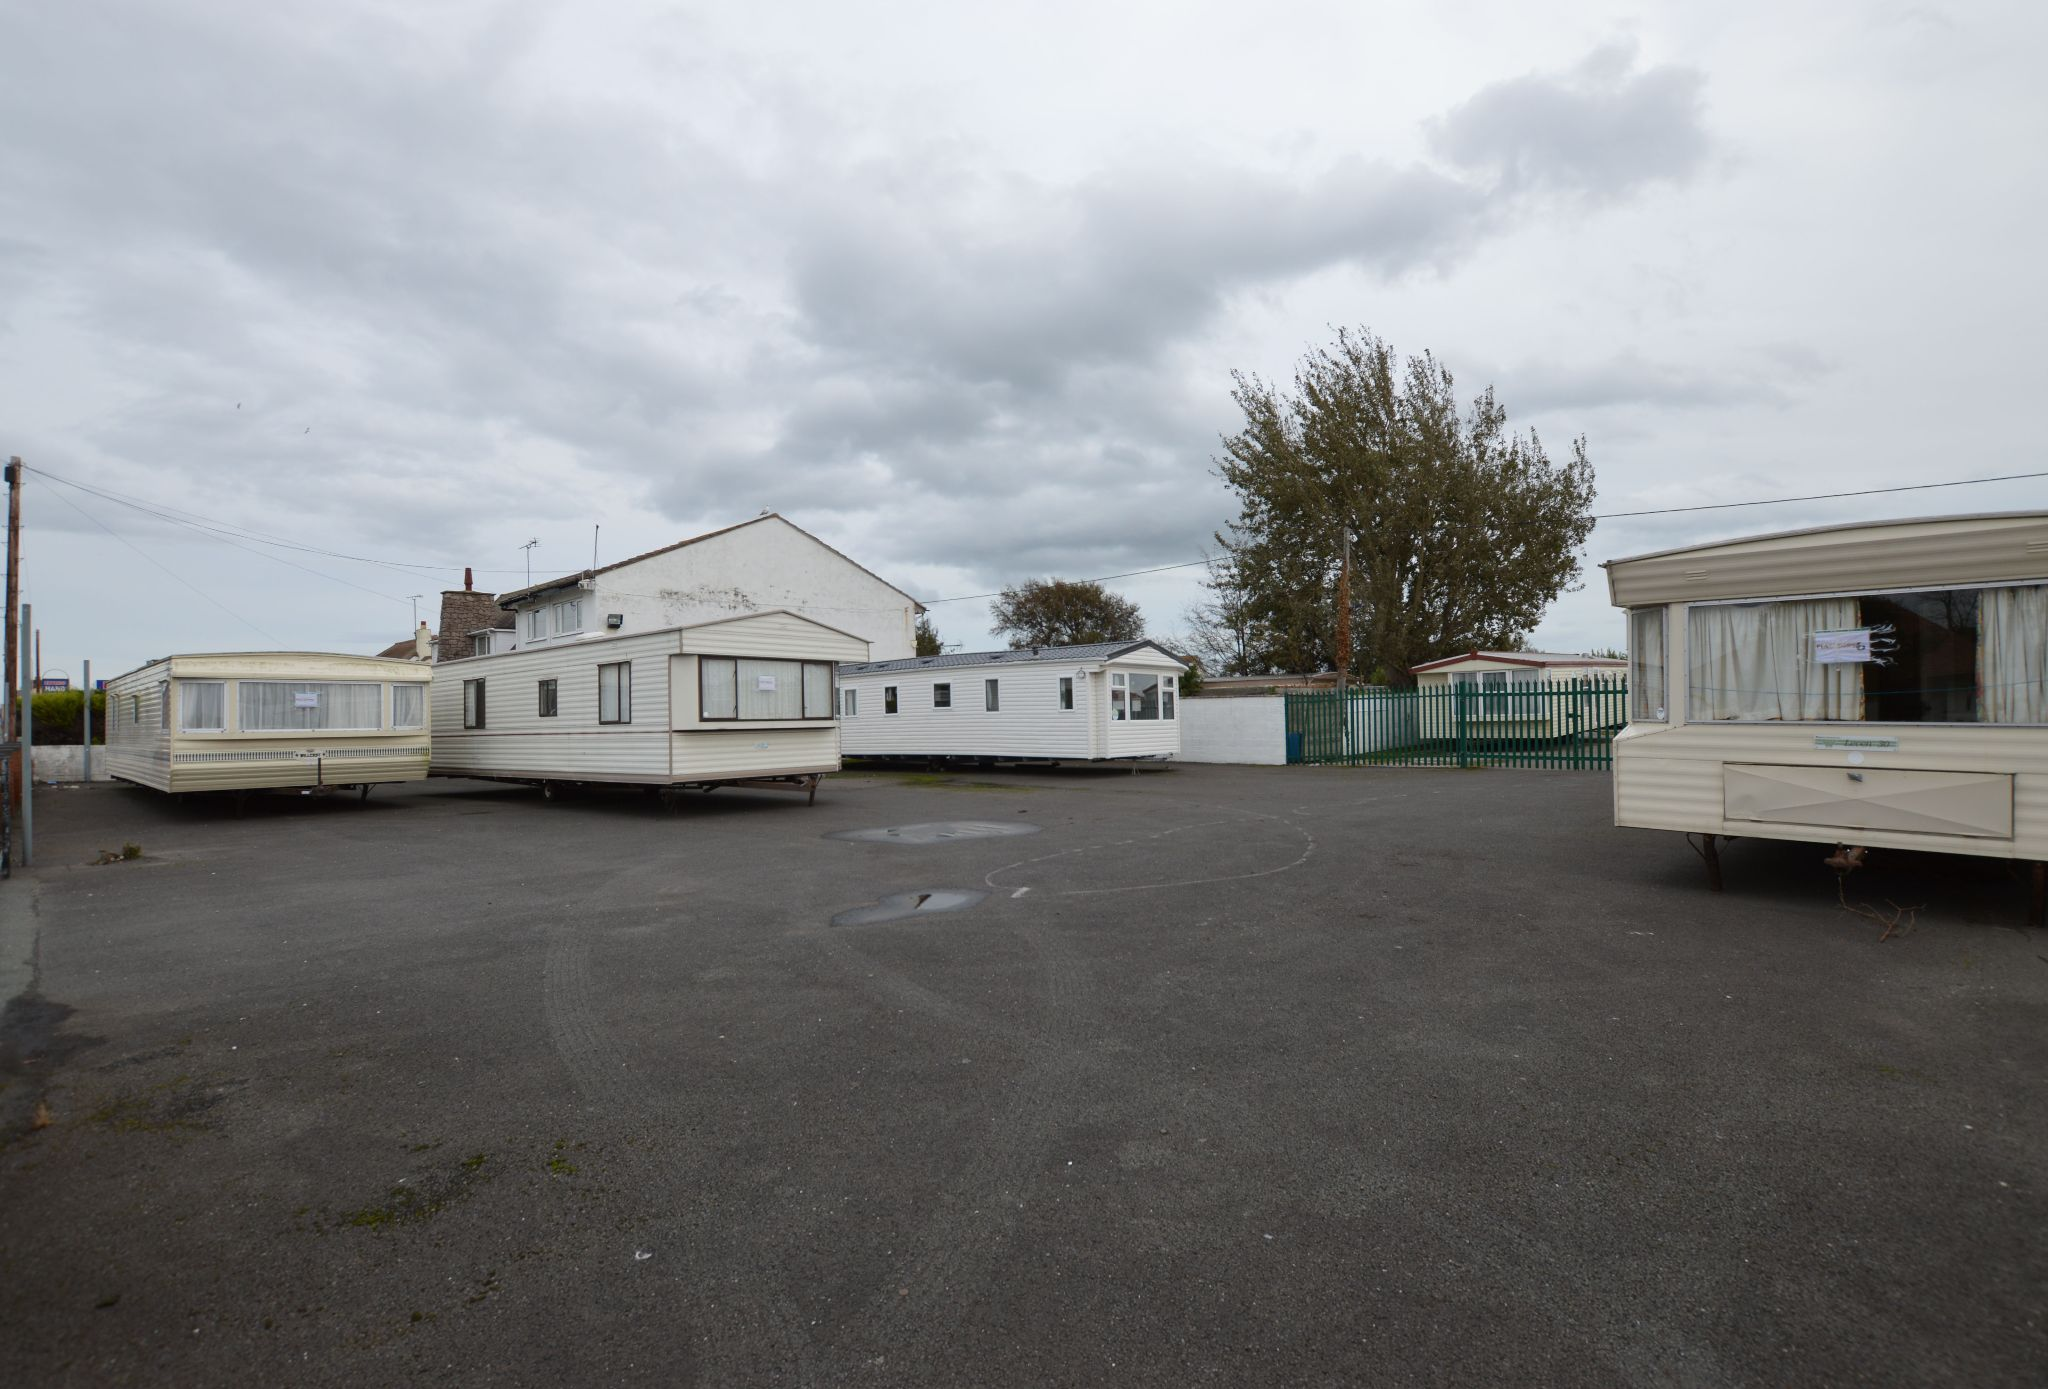 Office For Sale in Towyn - Lot View 3